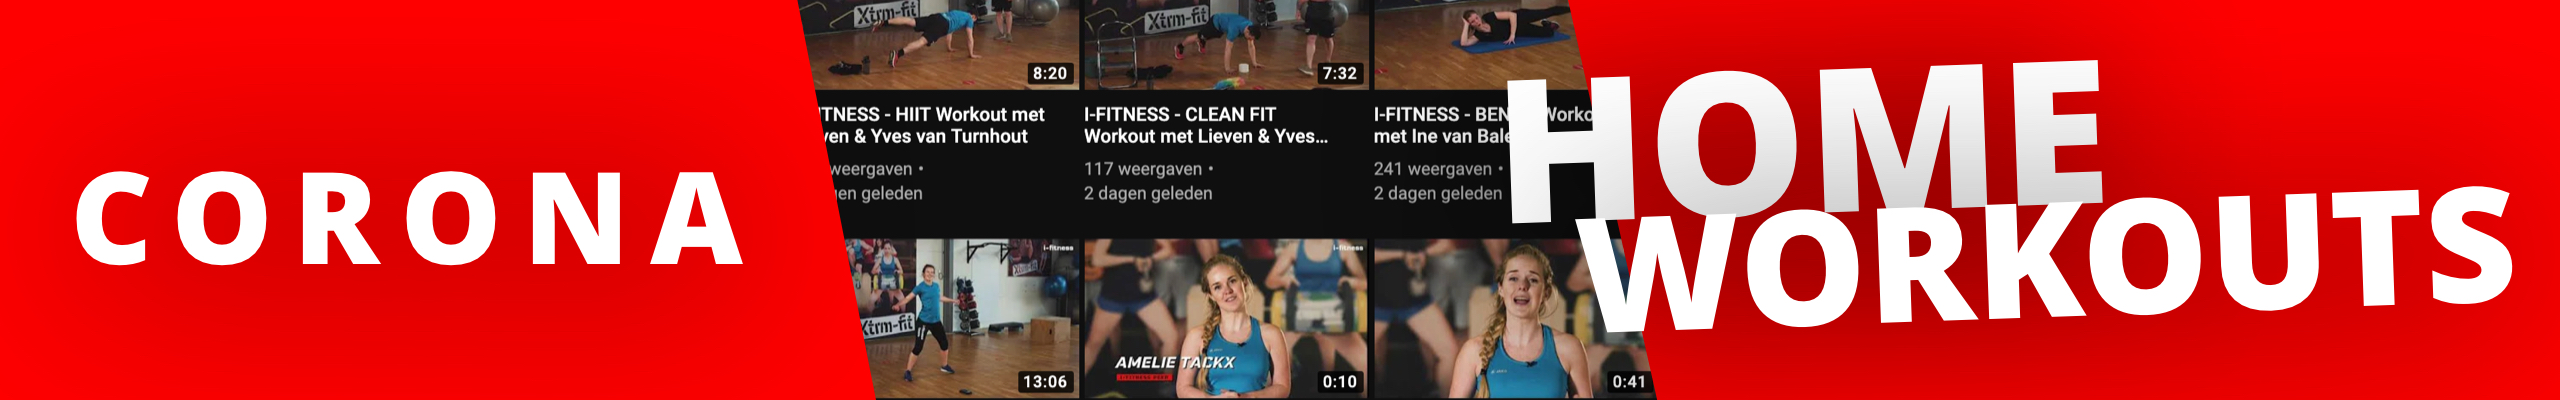 Ifitness homeworkouts 2x